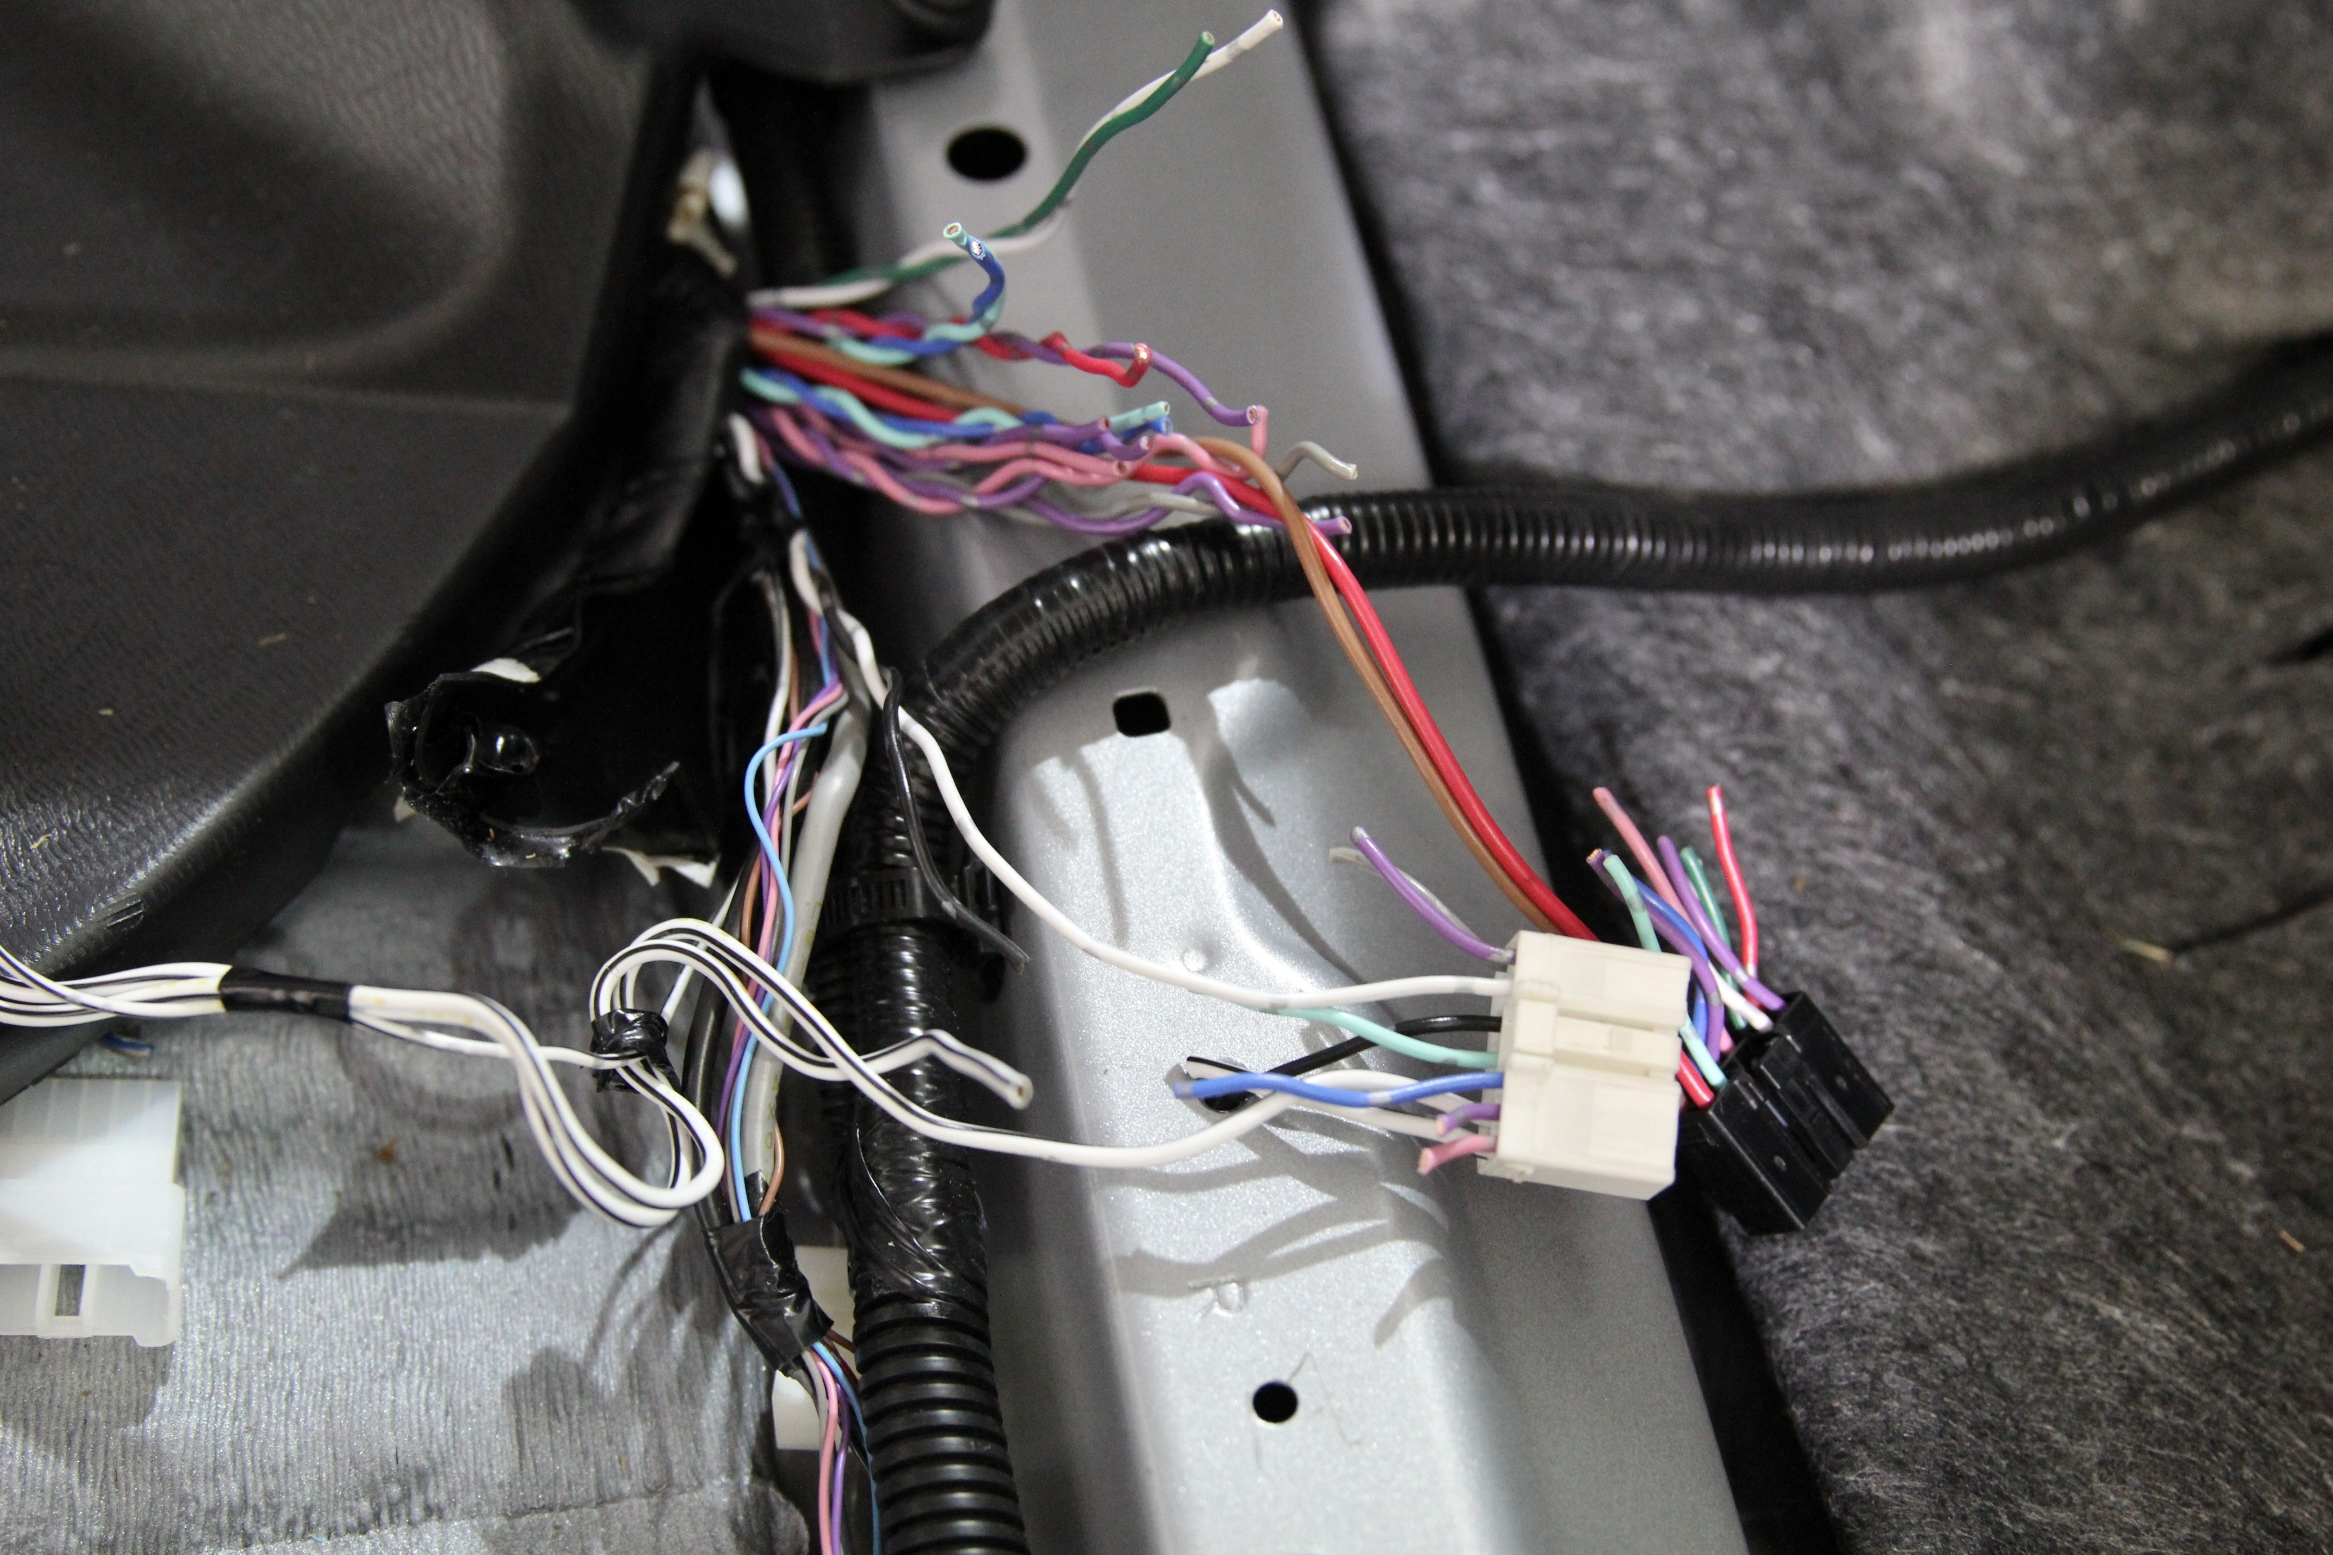 Toyota Tacoma Jbl Wiring Harness Solutions Guys Tundra Repair And Audio System Re Makeover